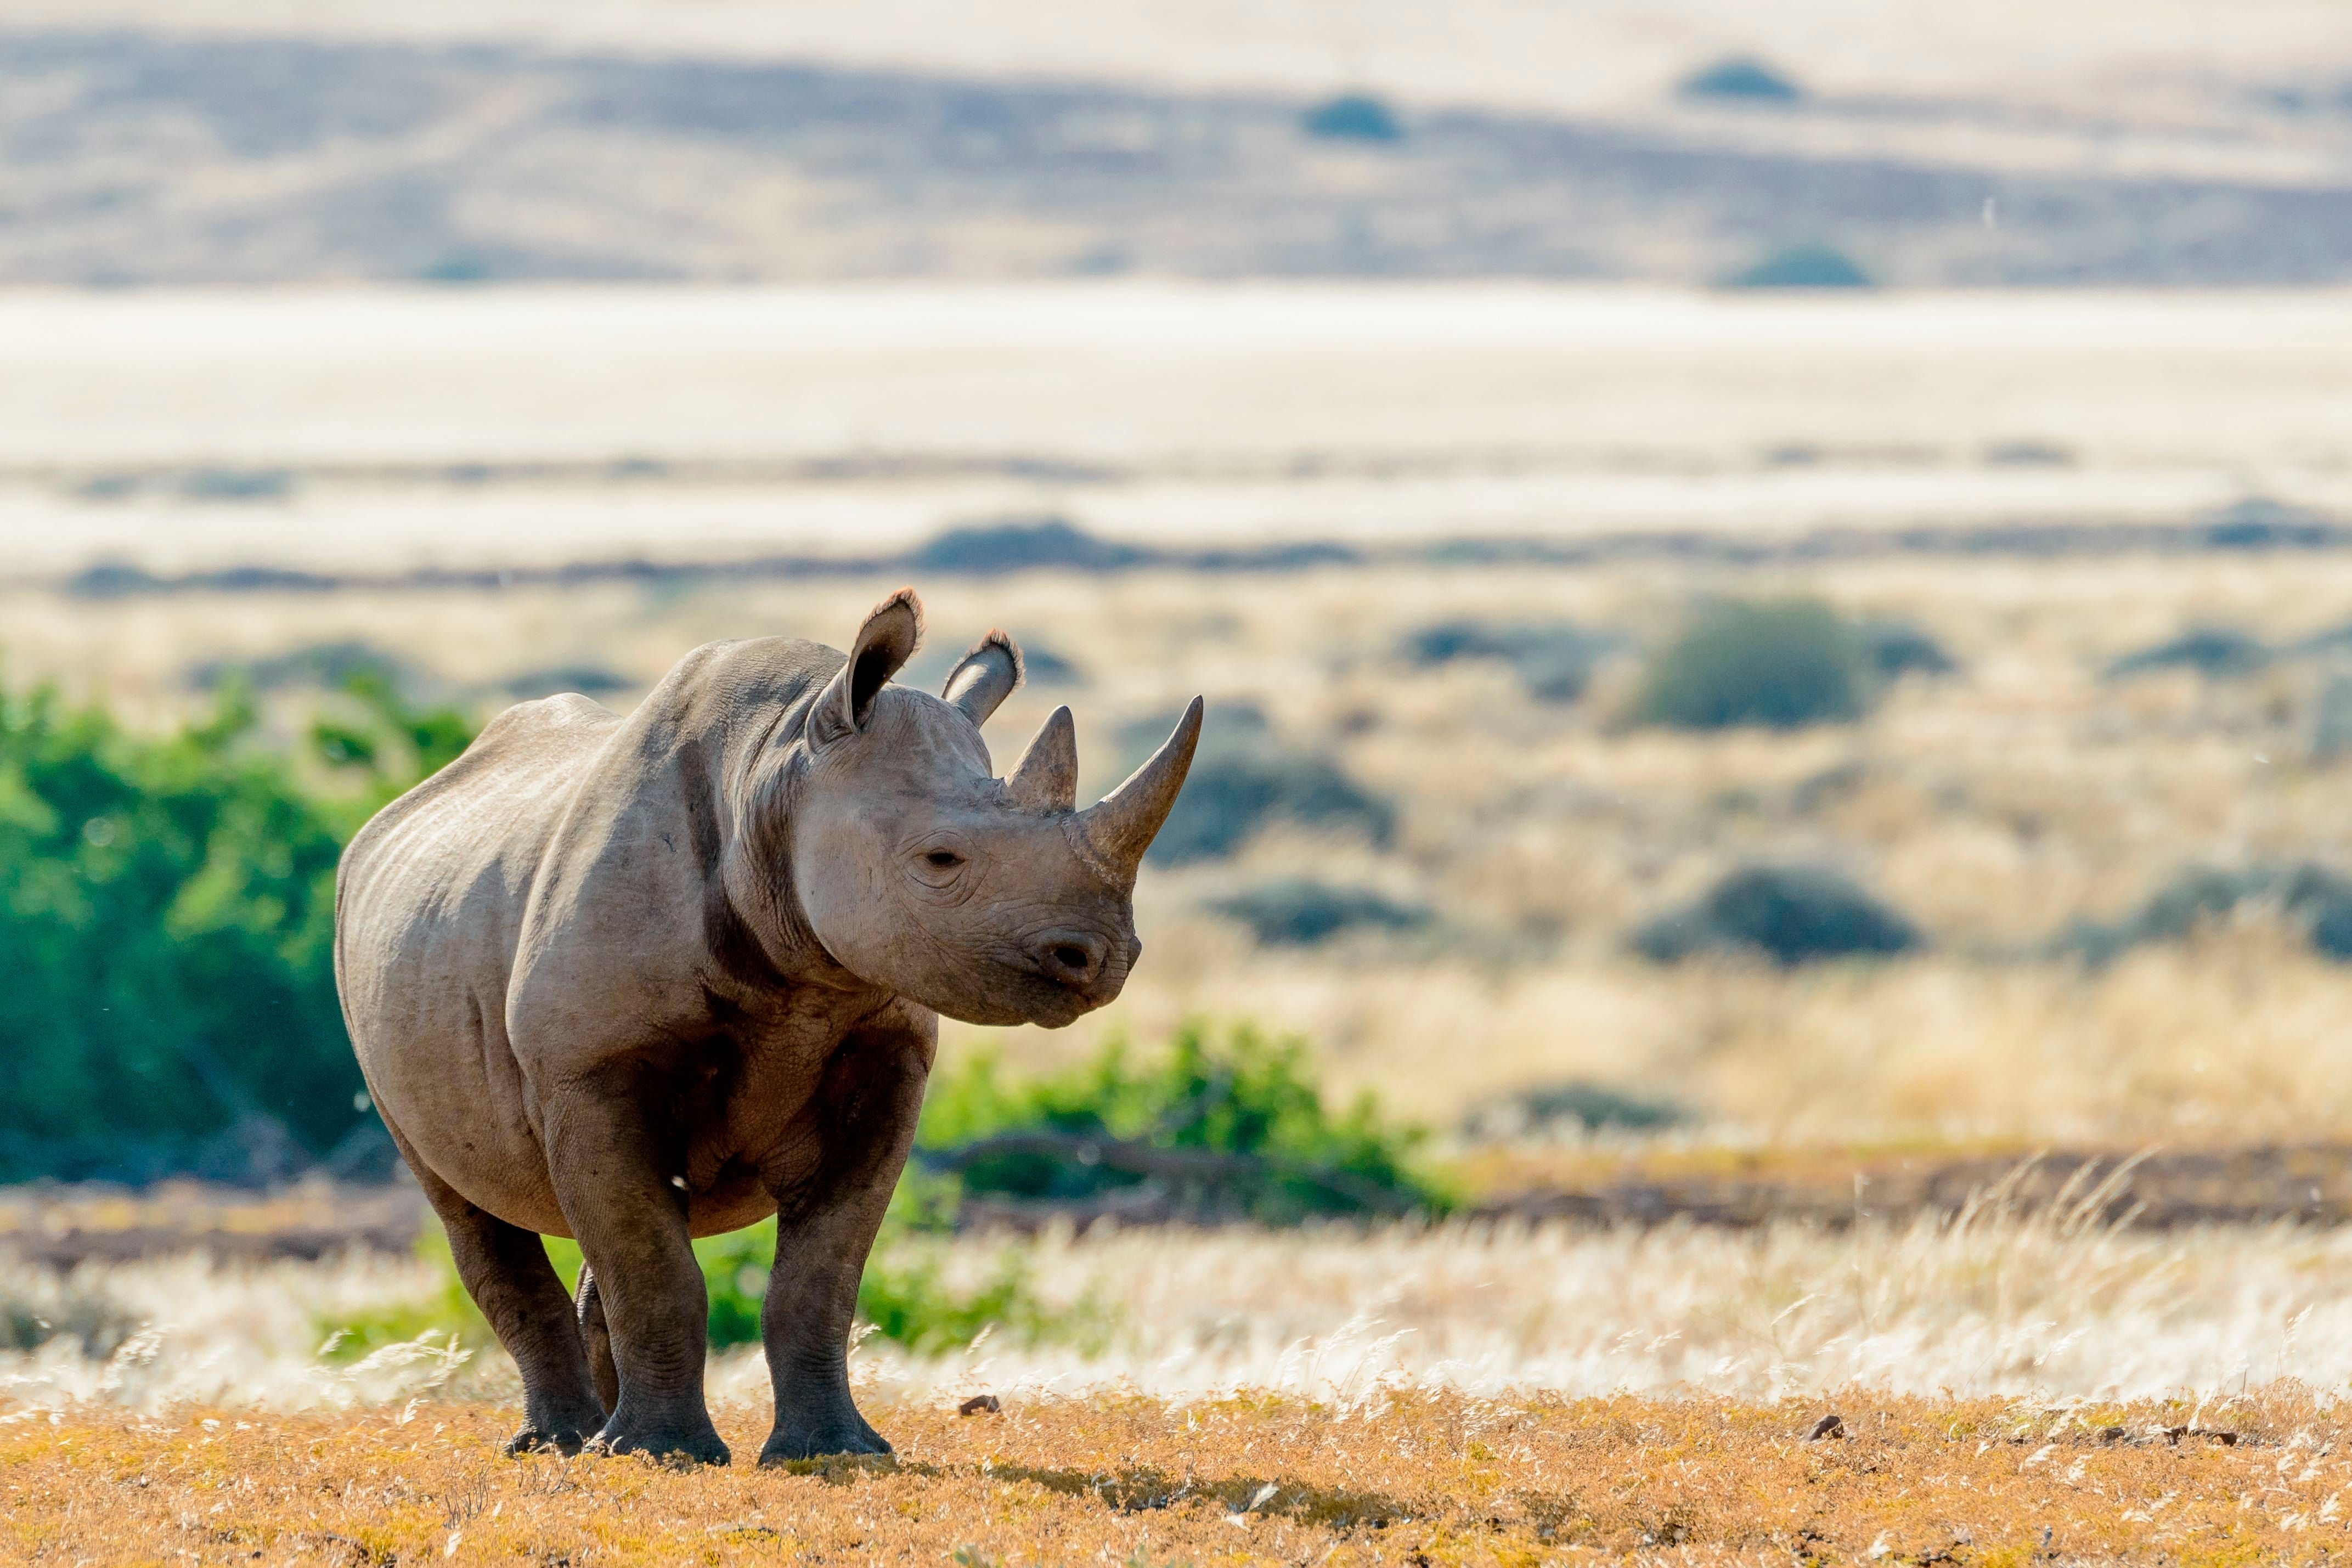 South Western Black Rhinoceros or Hook-lipped Rhinoceros (Diceros bicornis occidentalis),  Desert Rhino Camp, Palmwag Concession, Namibia. (Photo by: Education Images/UIG via Getty Images)